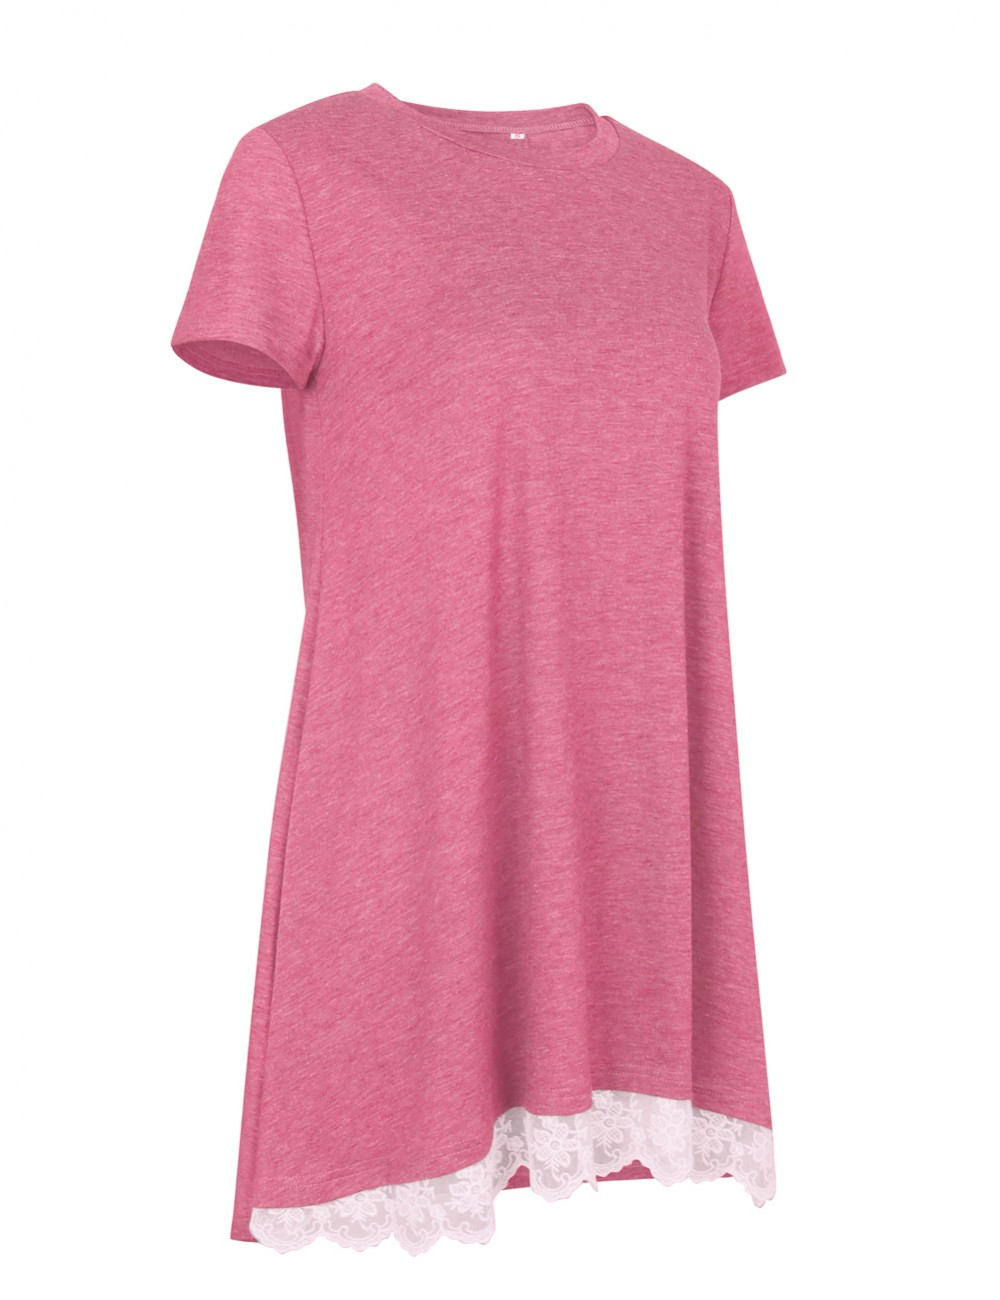 Bright Pink Tunic Shirts Lace Swing Round Neck  For Every Occasion